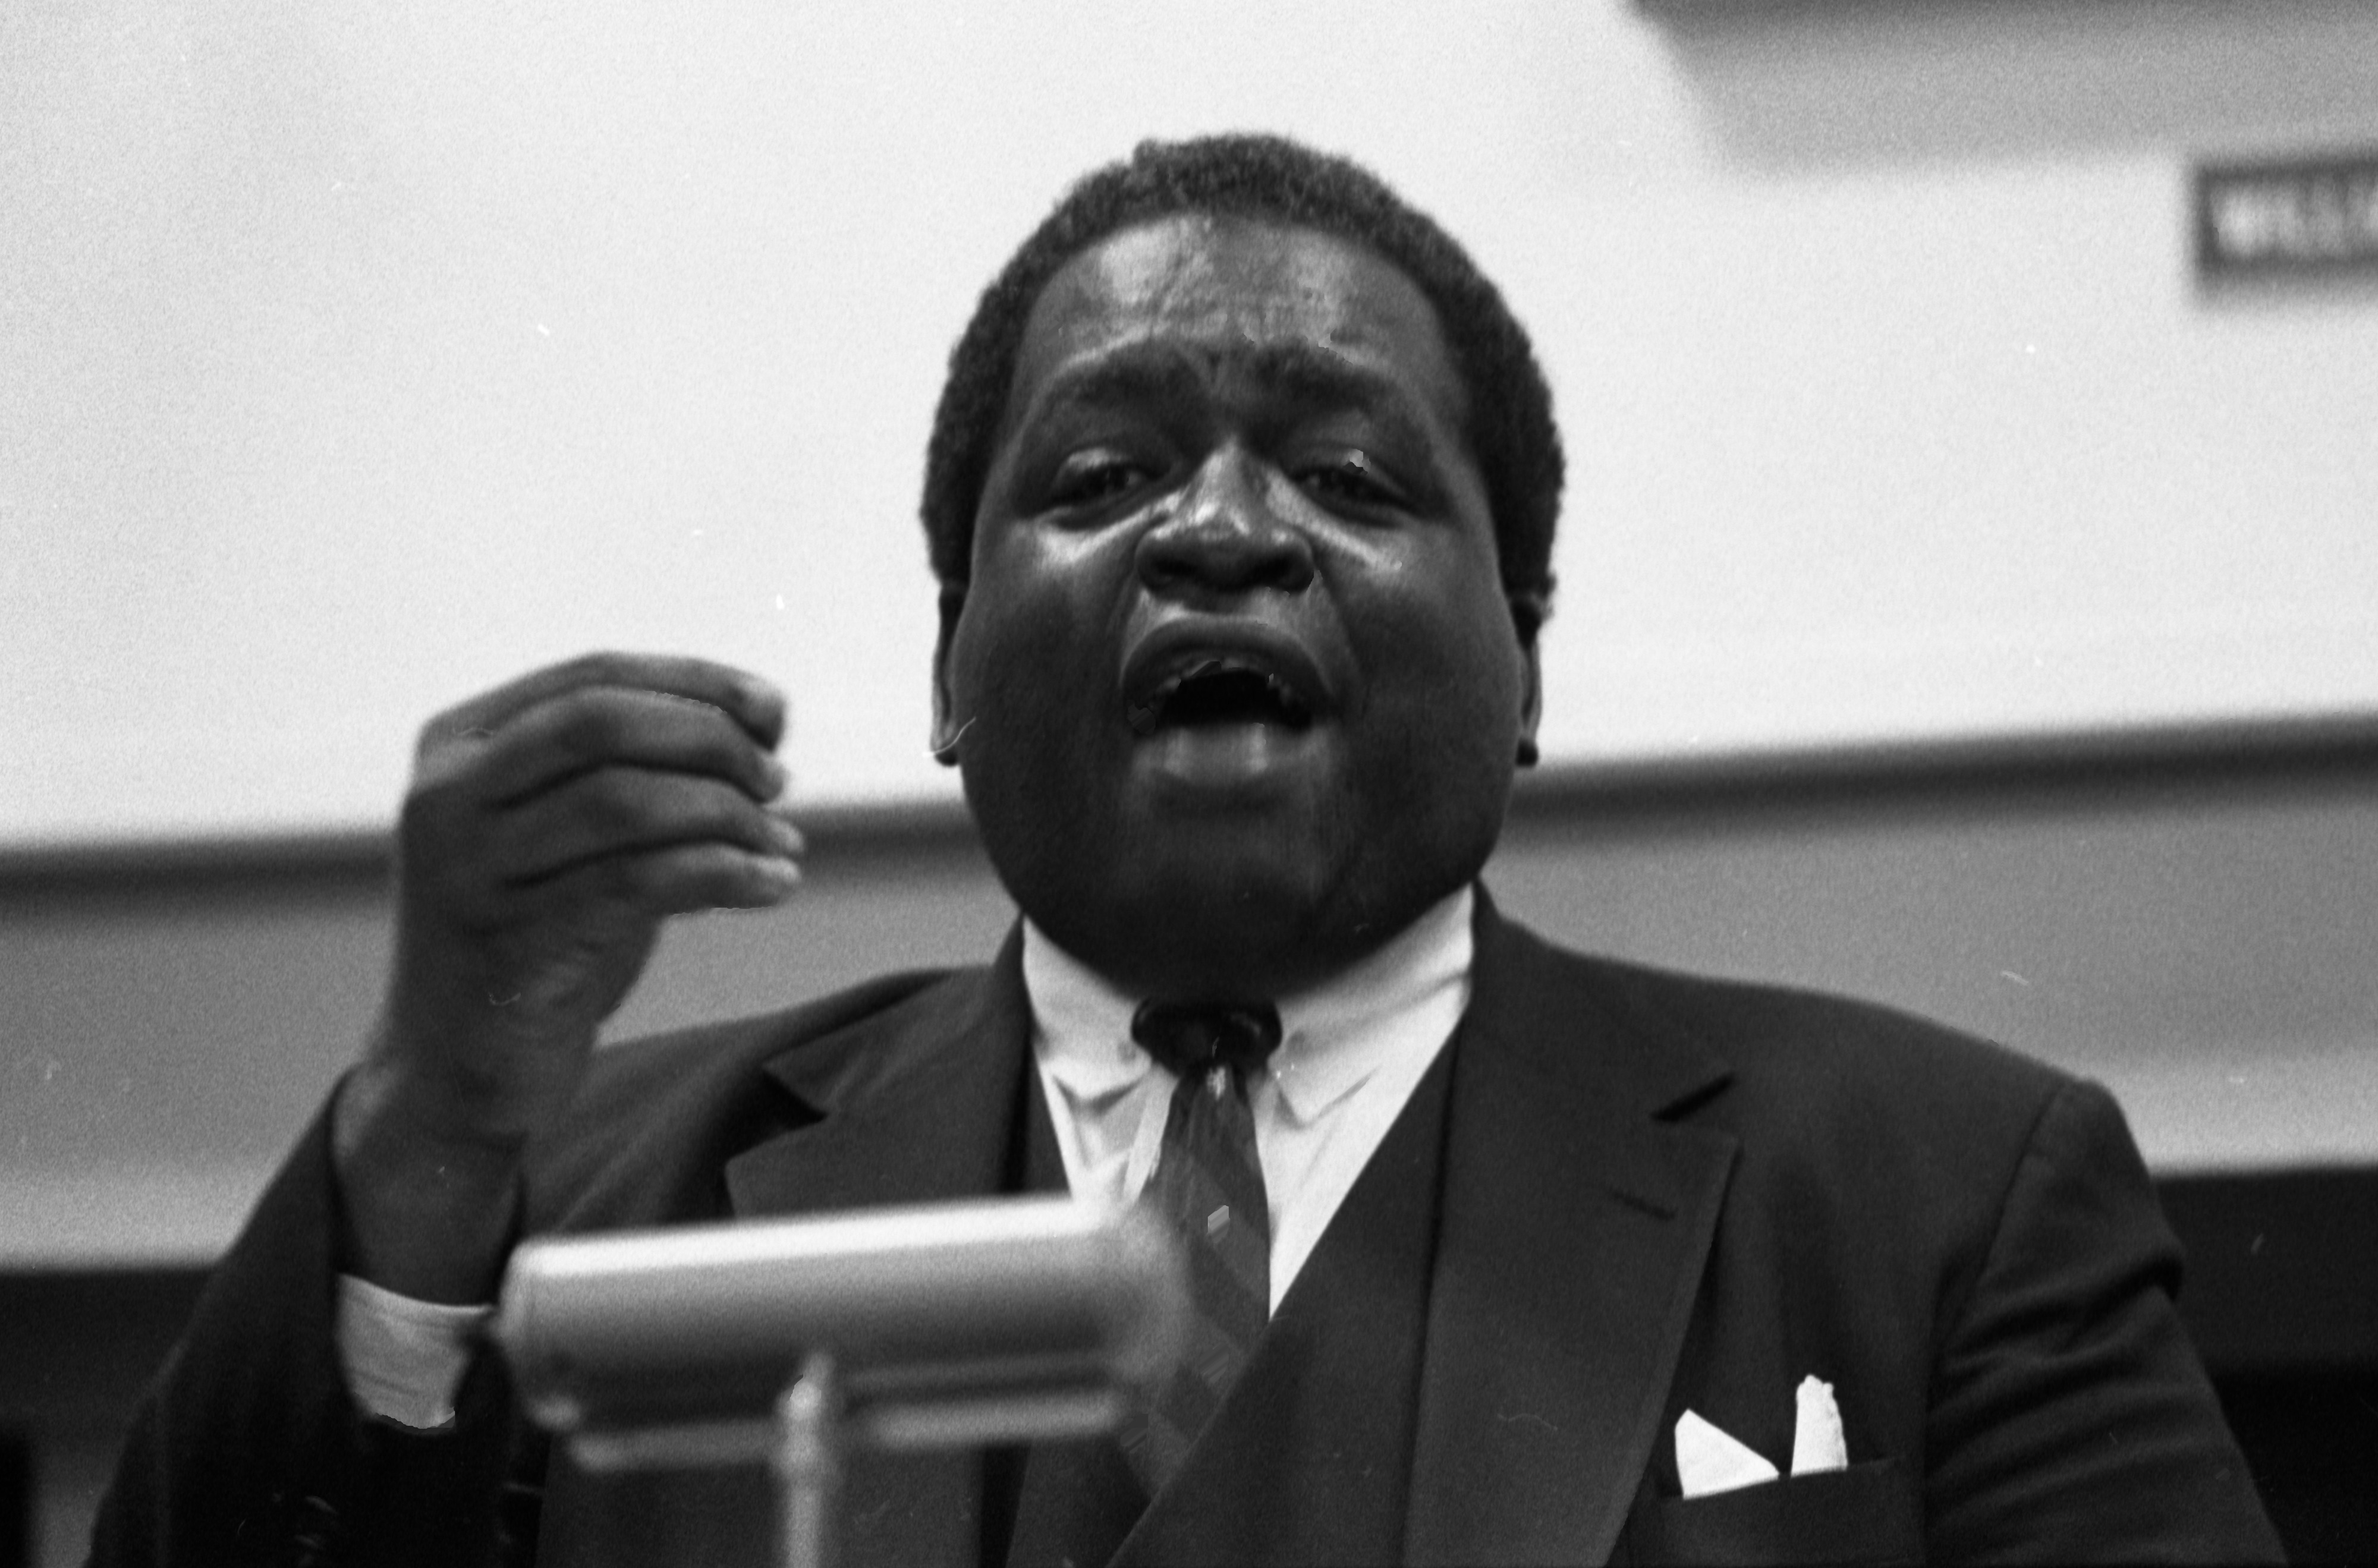 Rev. Richard Gilmore Gives Speech During Martin Luther King Jr Memoriam At Trotter House, January 18, 1986 image